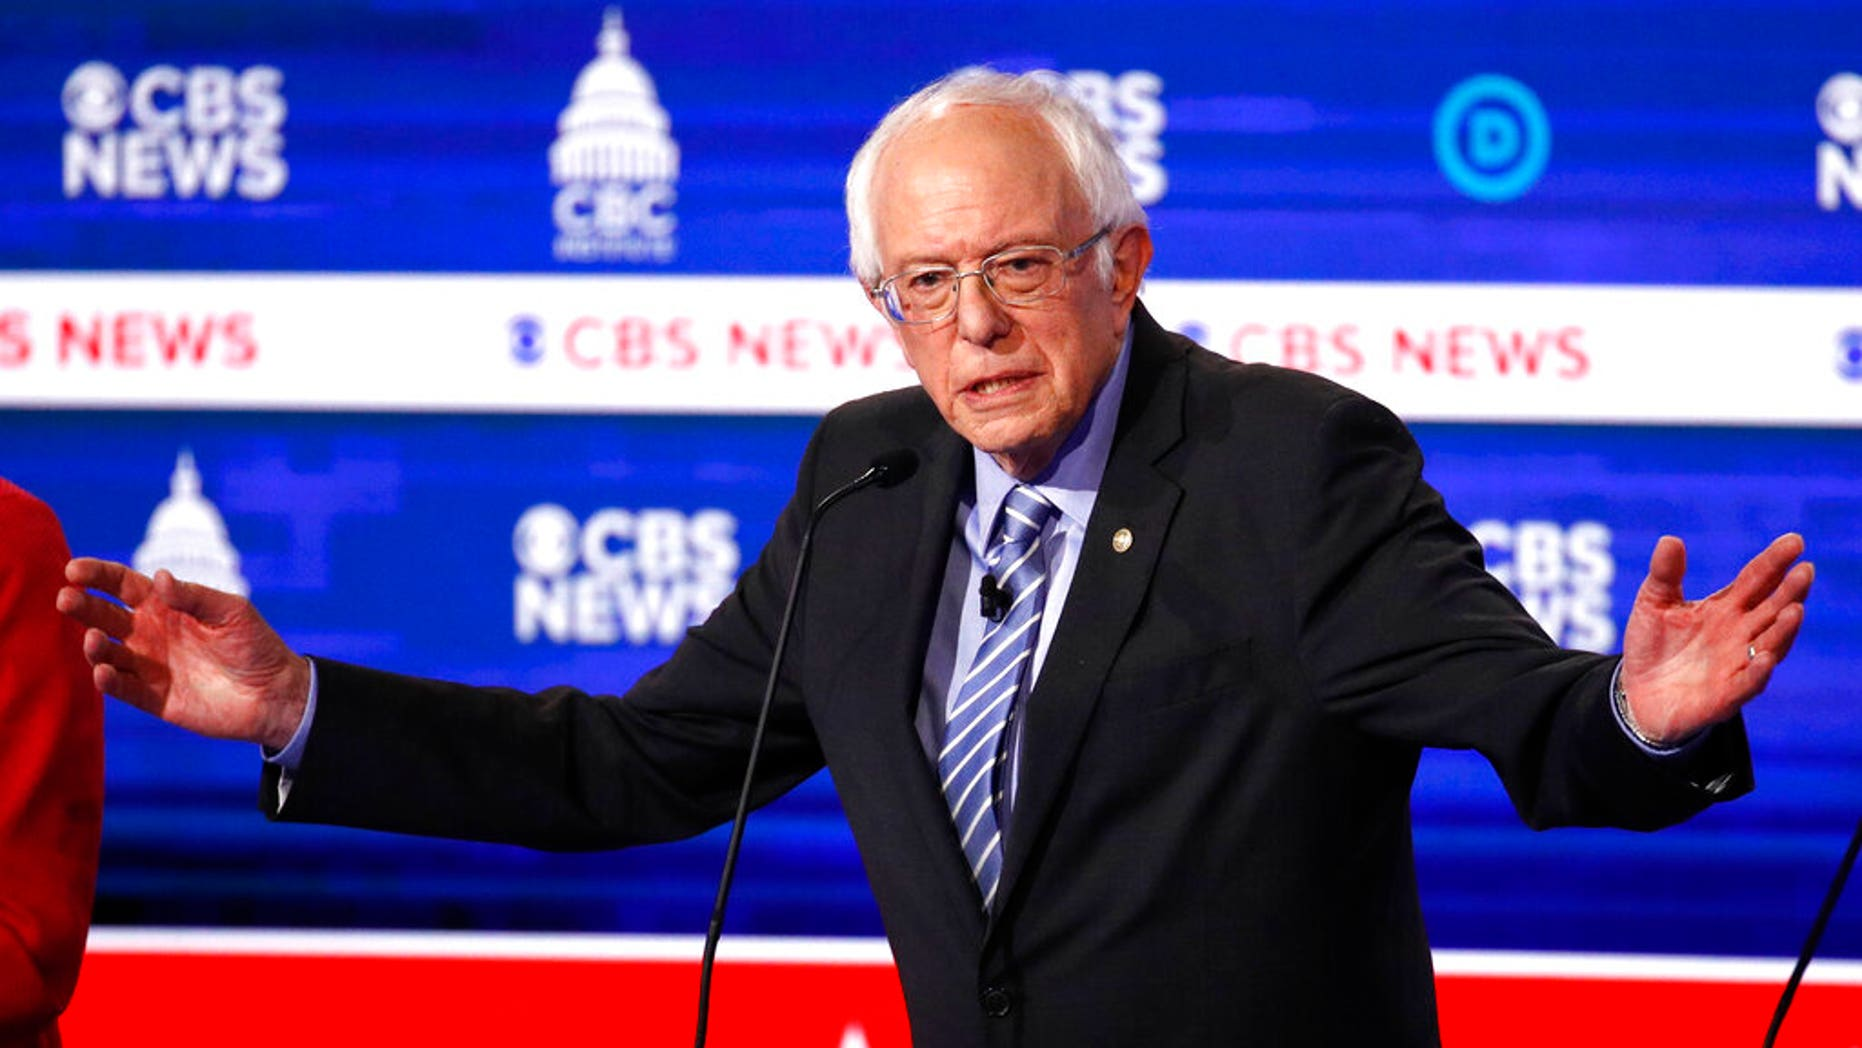 Sen. Bernie Sanders, I-Vt., speaks during a Democratic presidential primary debate at the Gaillard Center, in Charleston, S.C., co-hosted by CBS News and the Congressional Black Caucus Institute. (AP Photo/Patrick Semansky)